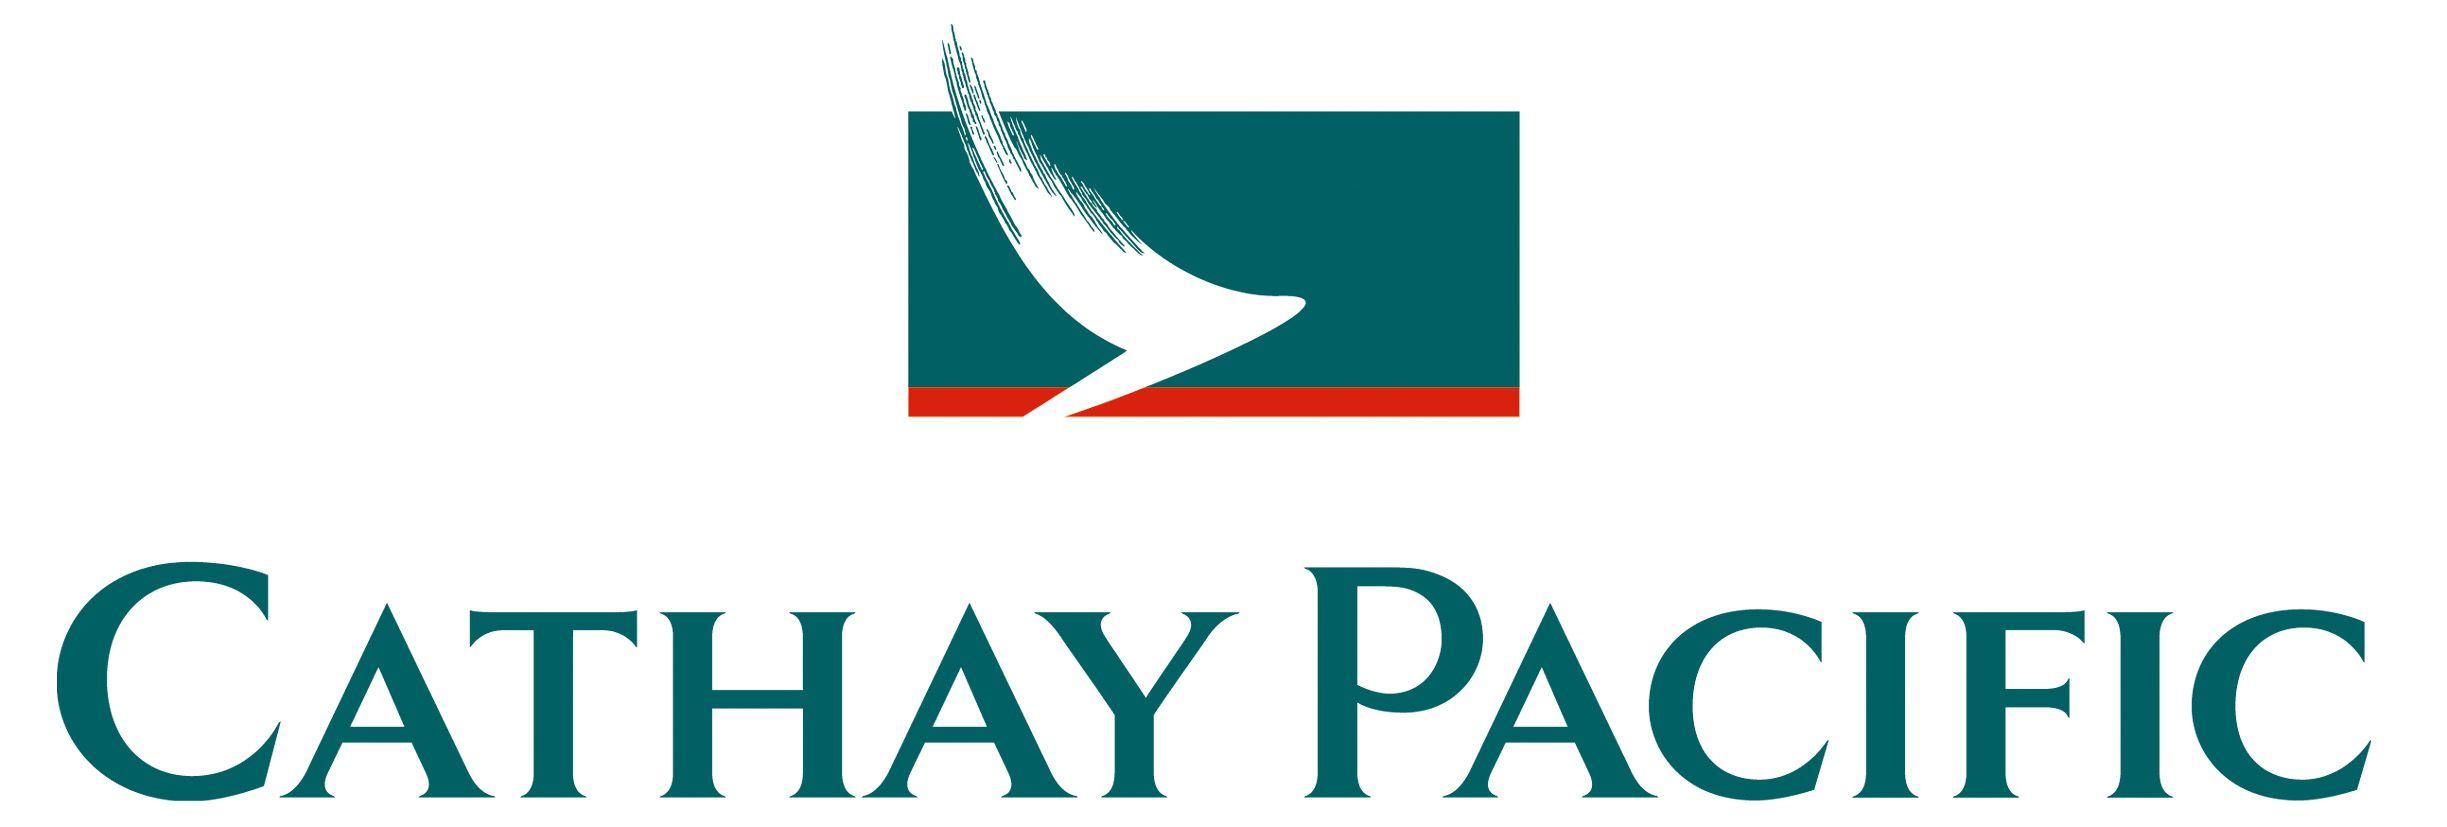 cathay-pacific-airlines-logo.jpg